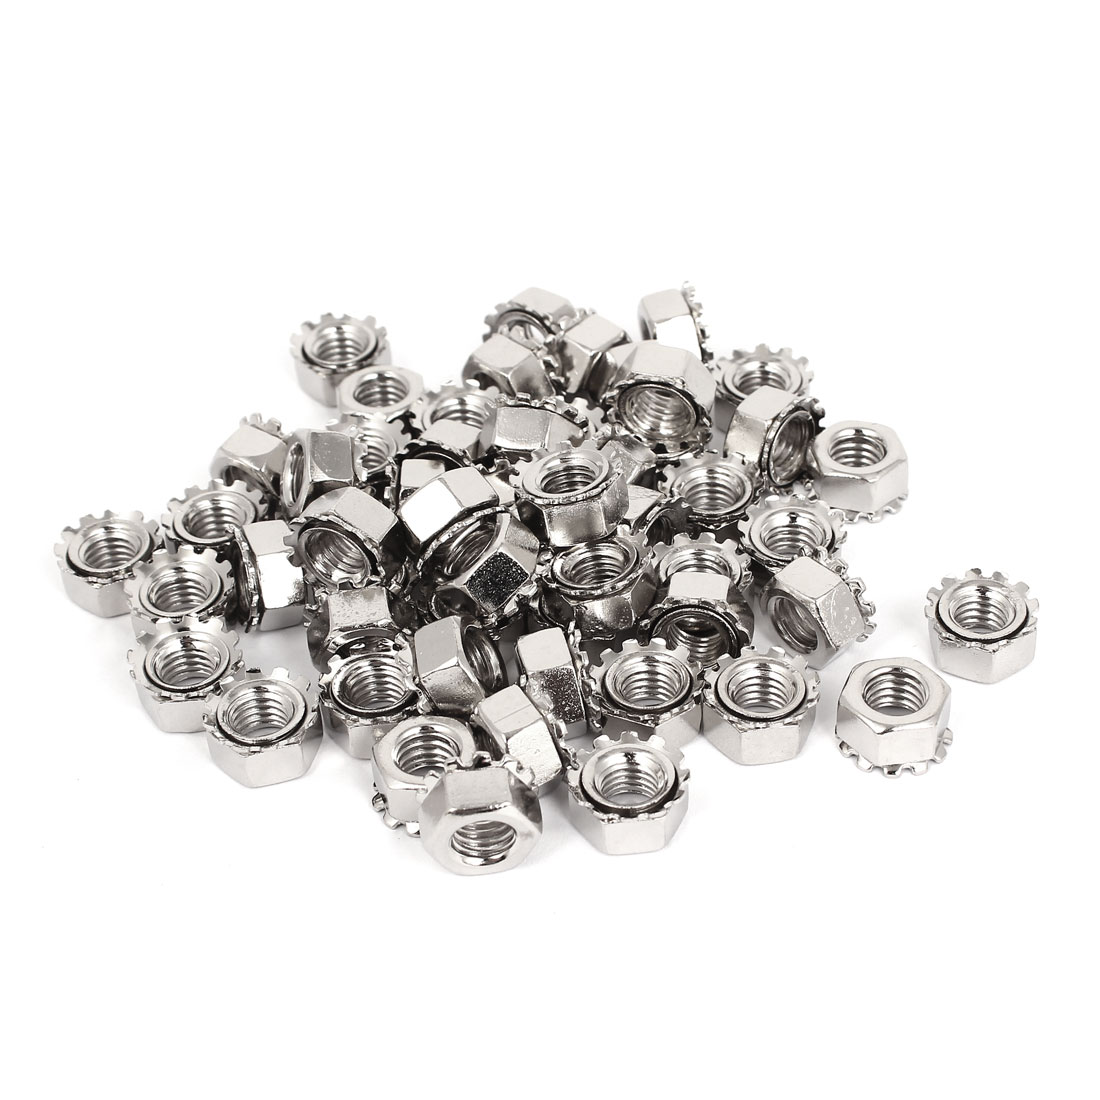 8mm Thread Dia Nickel Plated External Tooth K Lock Kep Nut Silver Tone 100Pcs